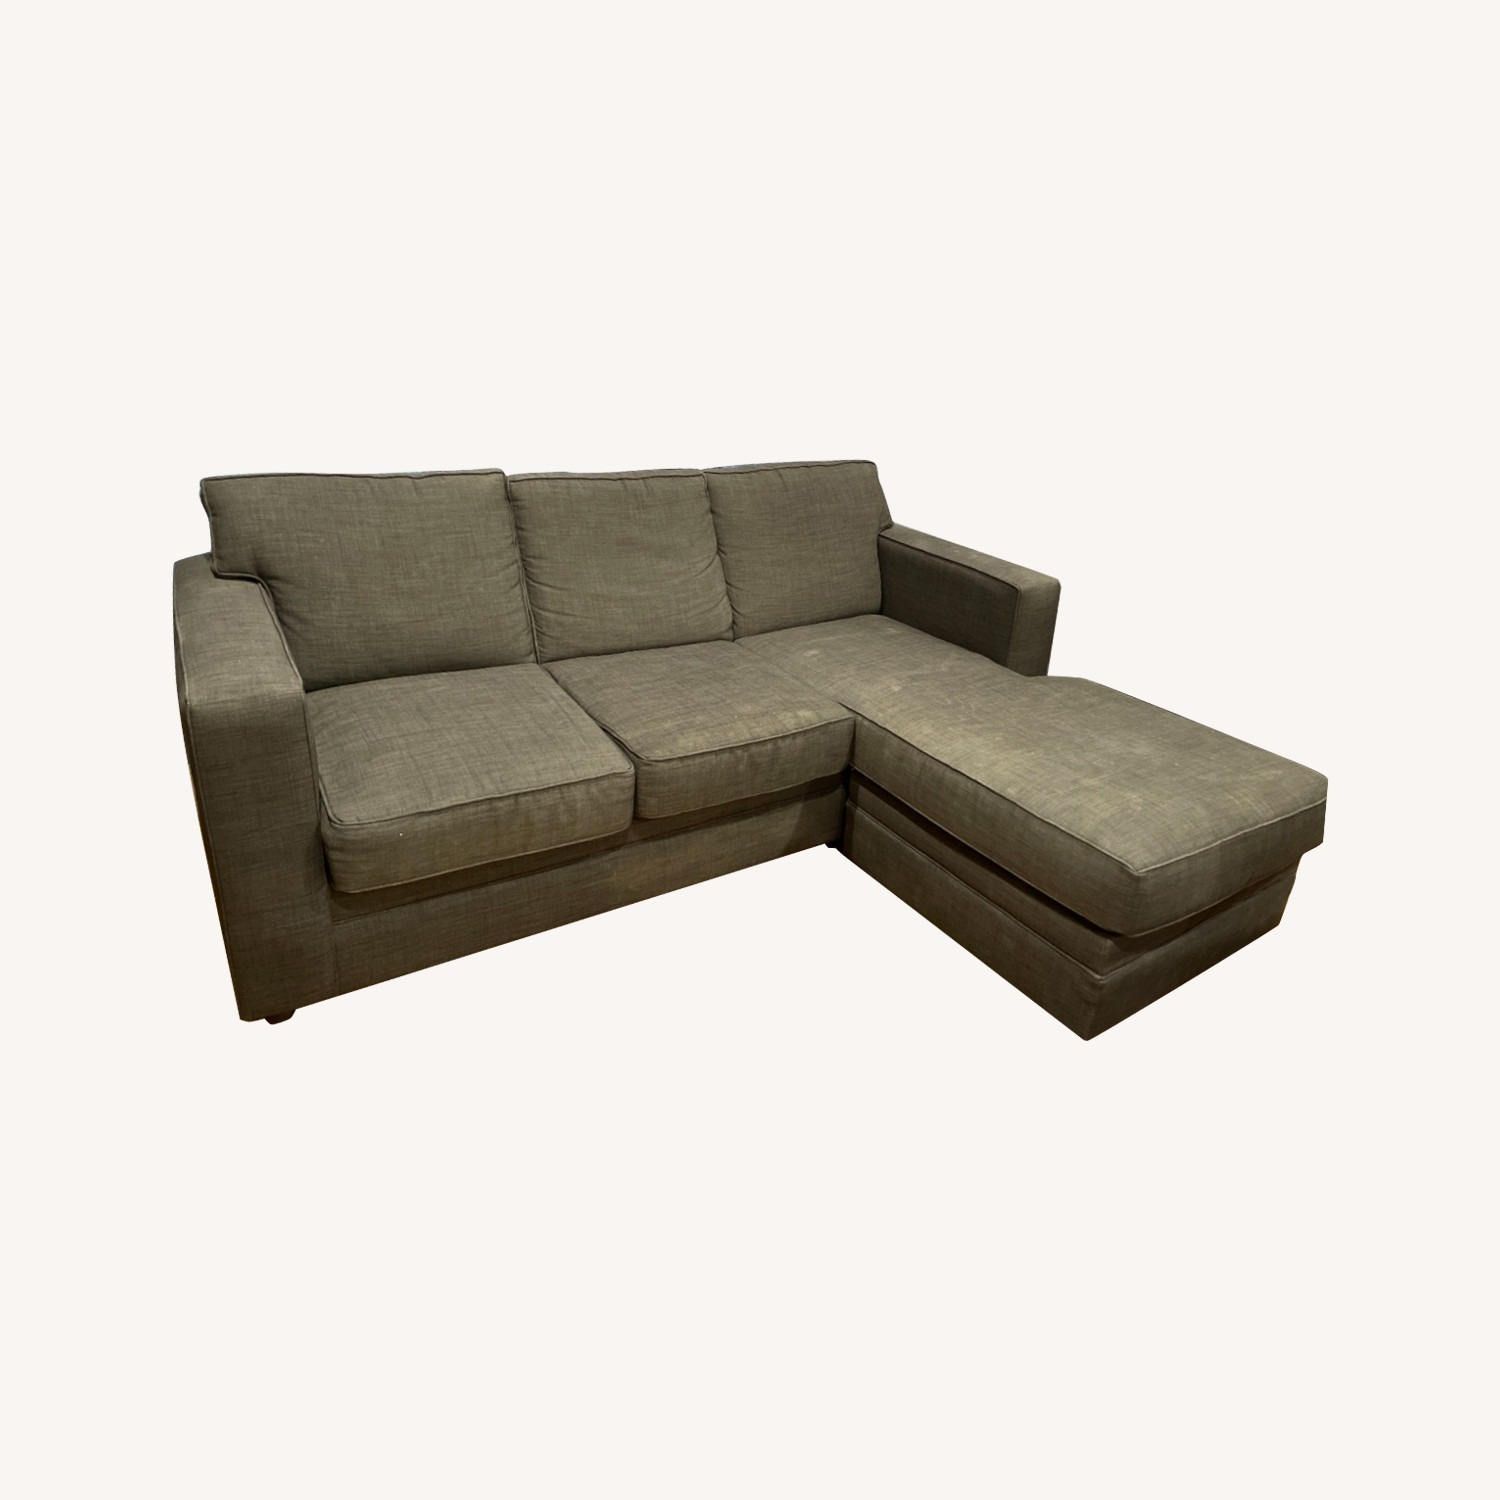 Queen Size Sleeper Sectional Sofa - image-0